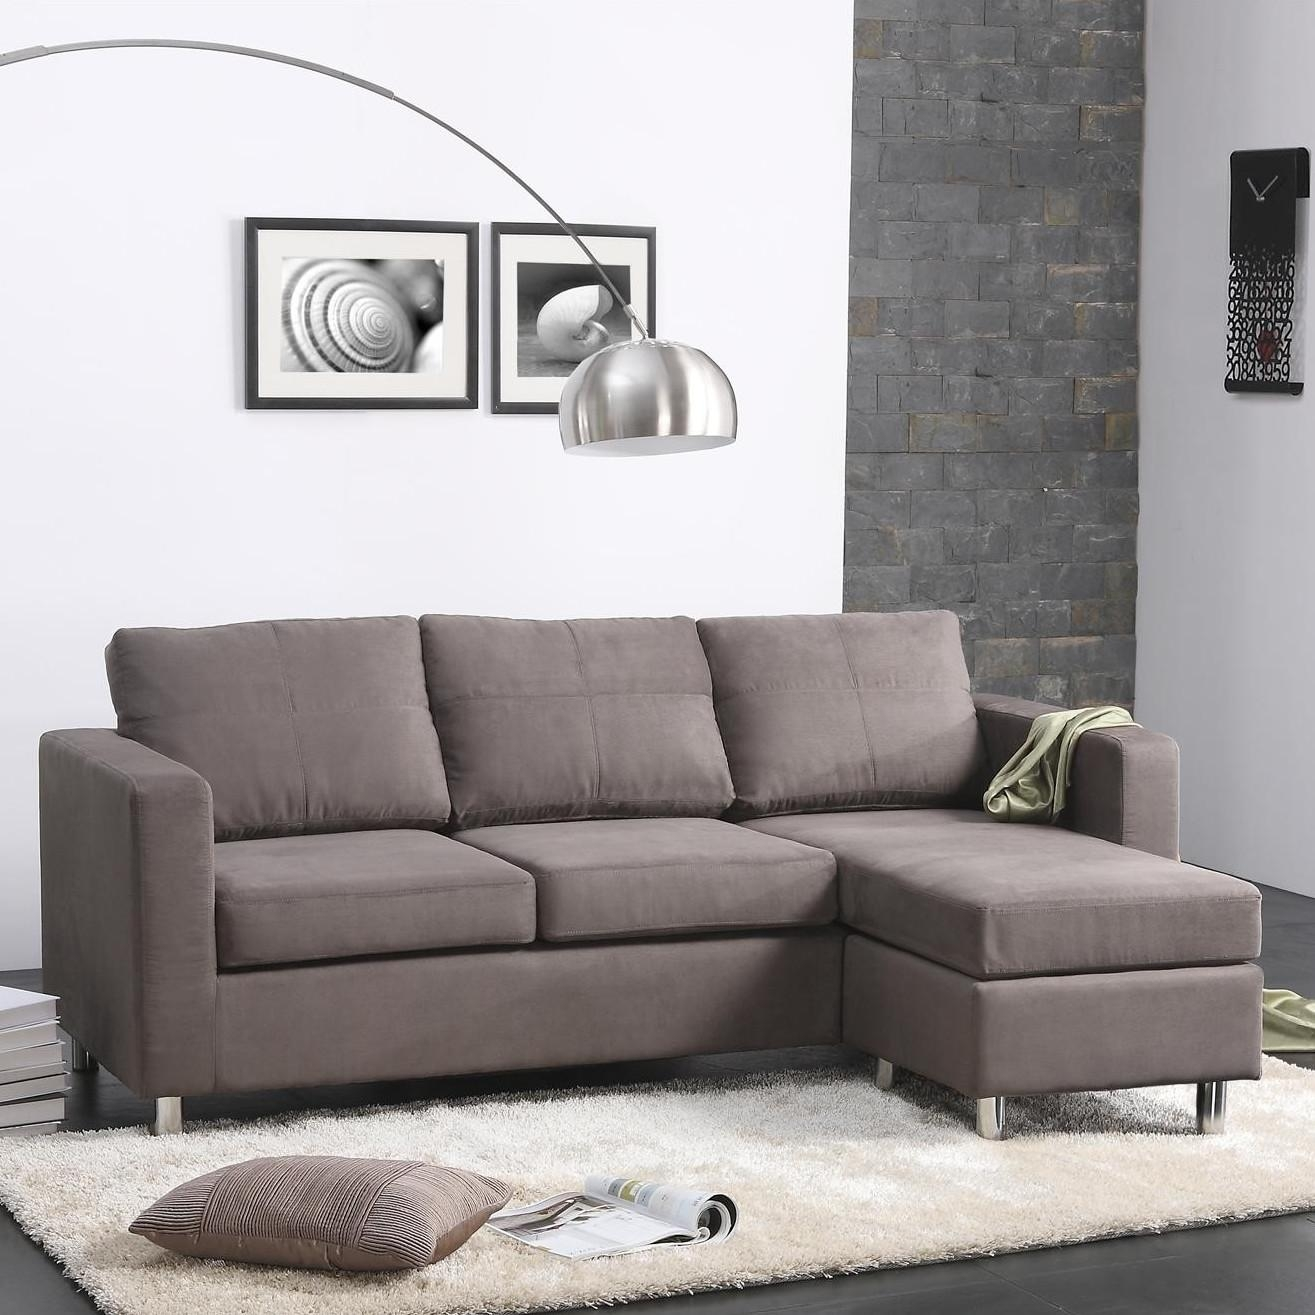 Sofas Center : Mini Sectional Sofa With Chaise Wholesalersmini Regarding Mini Sectional Sofas (Image 18 of 20)